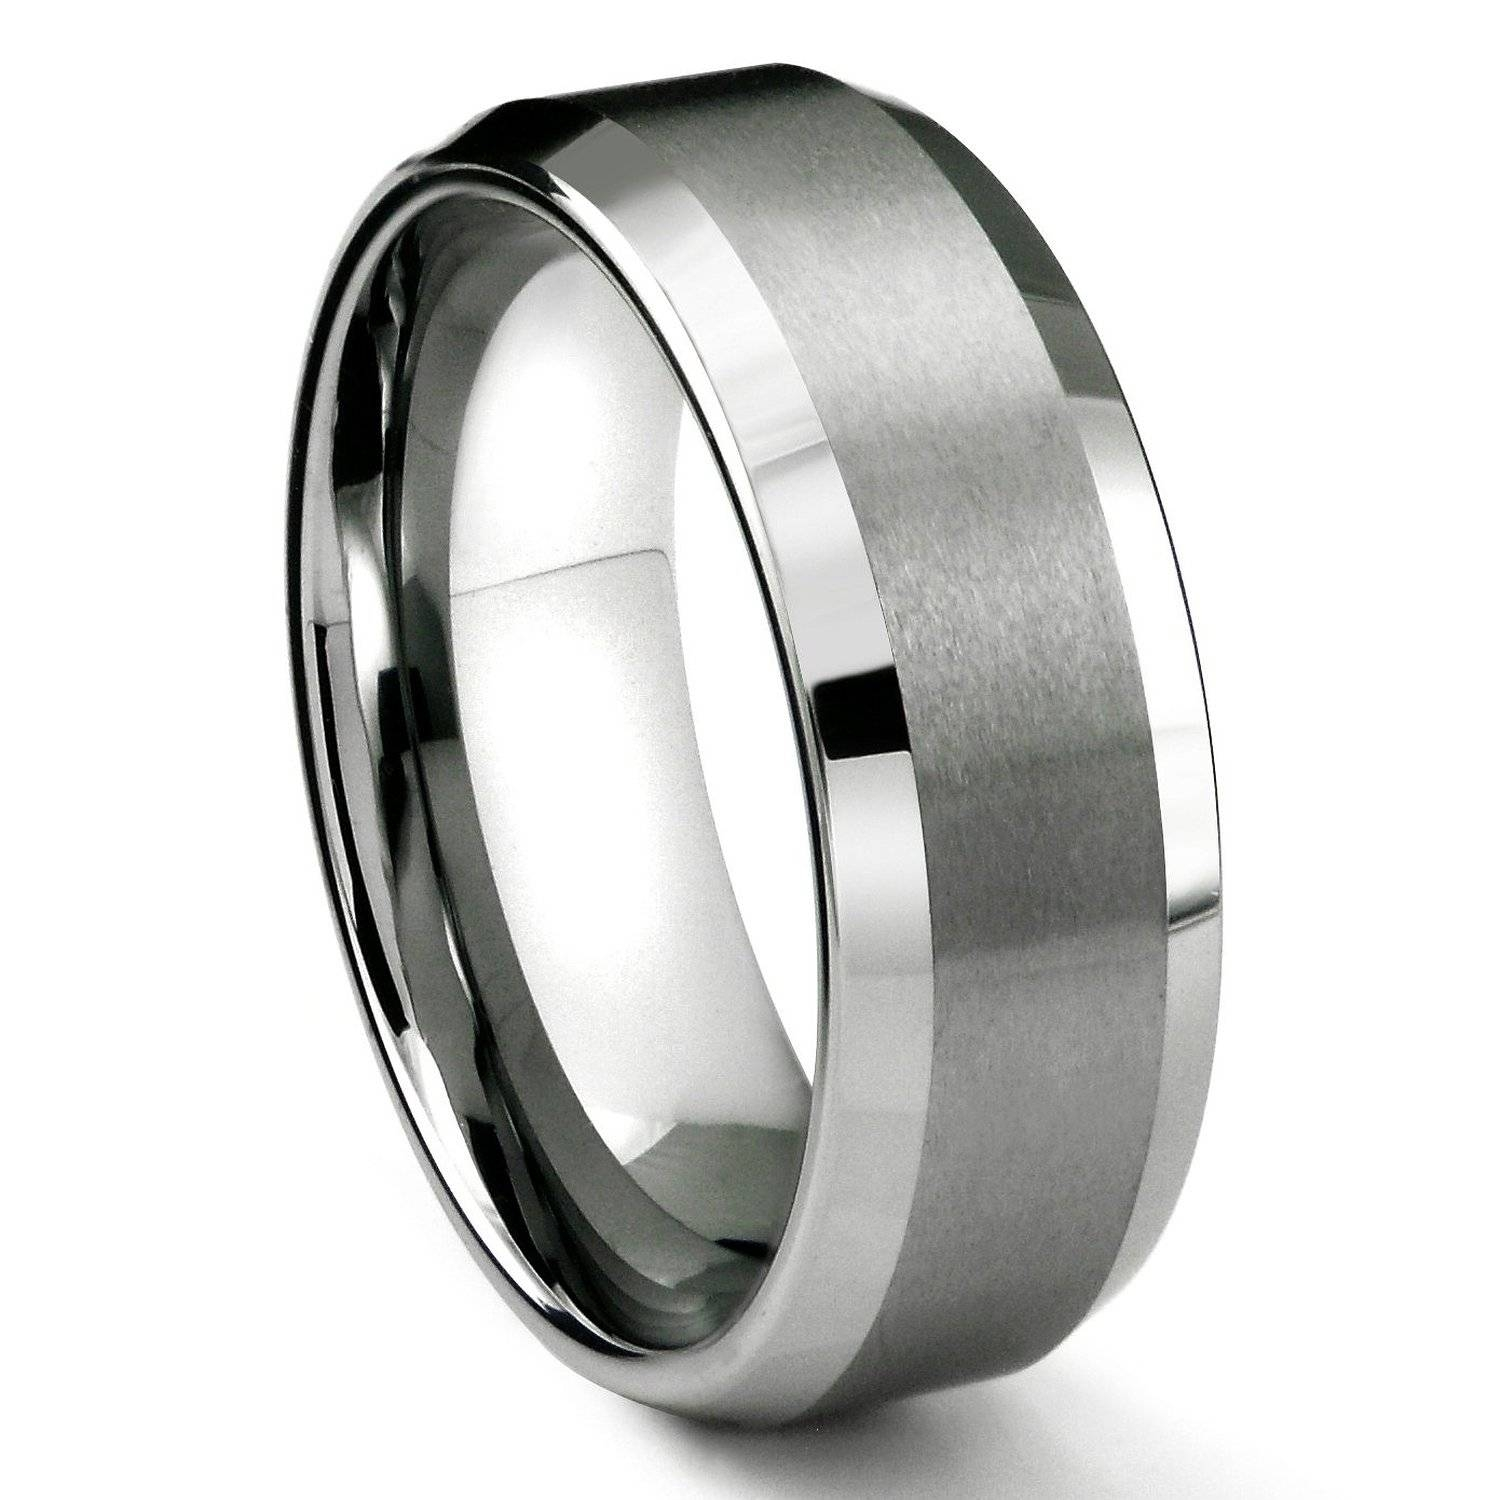 Mens Wedding Ring Within Best Male Wedding Bands (View 11 of 15)